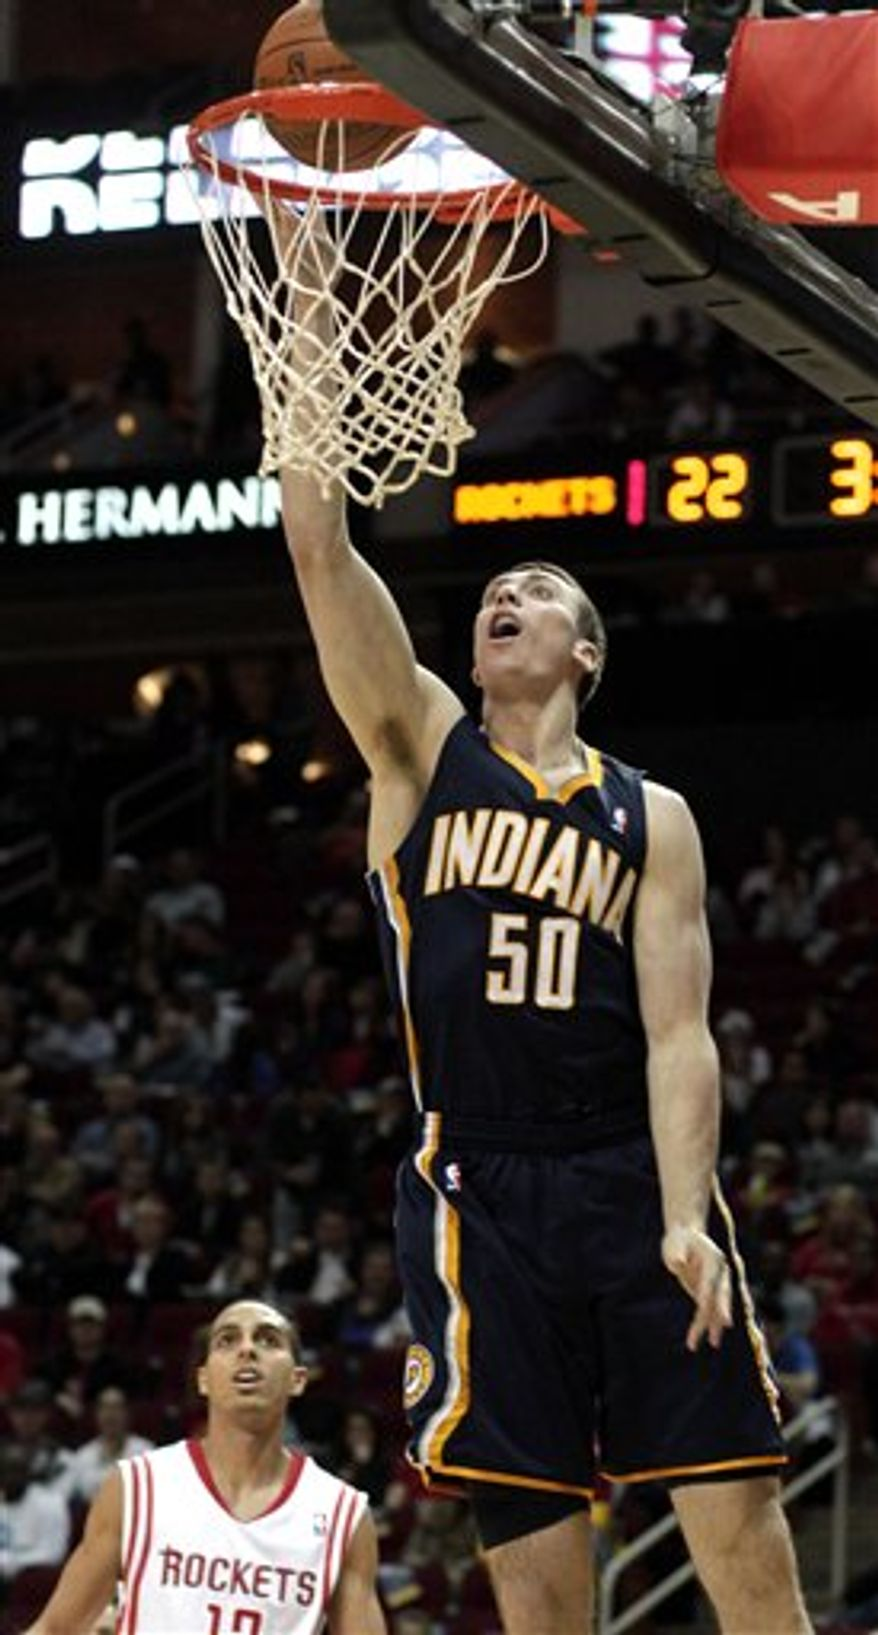 Indiana Pacers' Tyler Hansbrough (50) scores two points in front of Houston Rockets' Kevin Martin (12) during the first half of an NBA basketball game Saturday, March 5, 2011, in Houston. (AP Photo/Pat Sullivan)